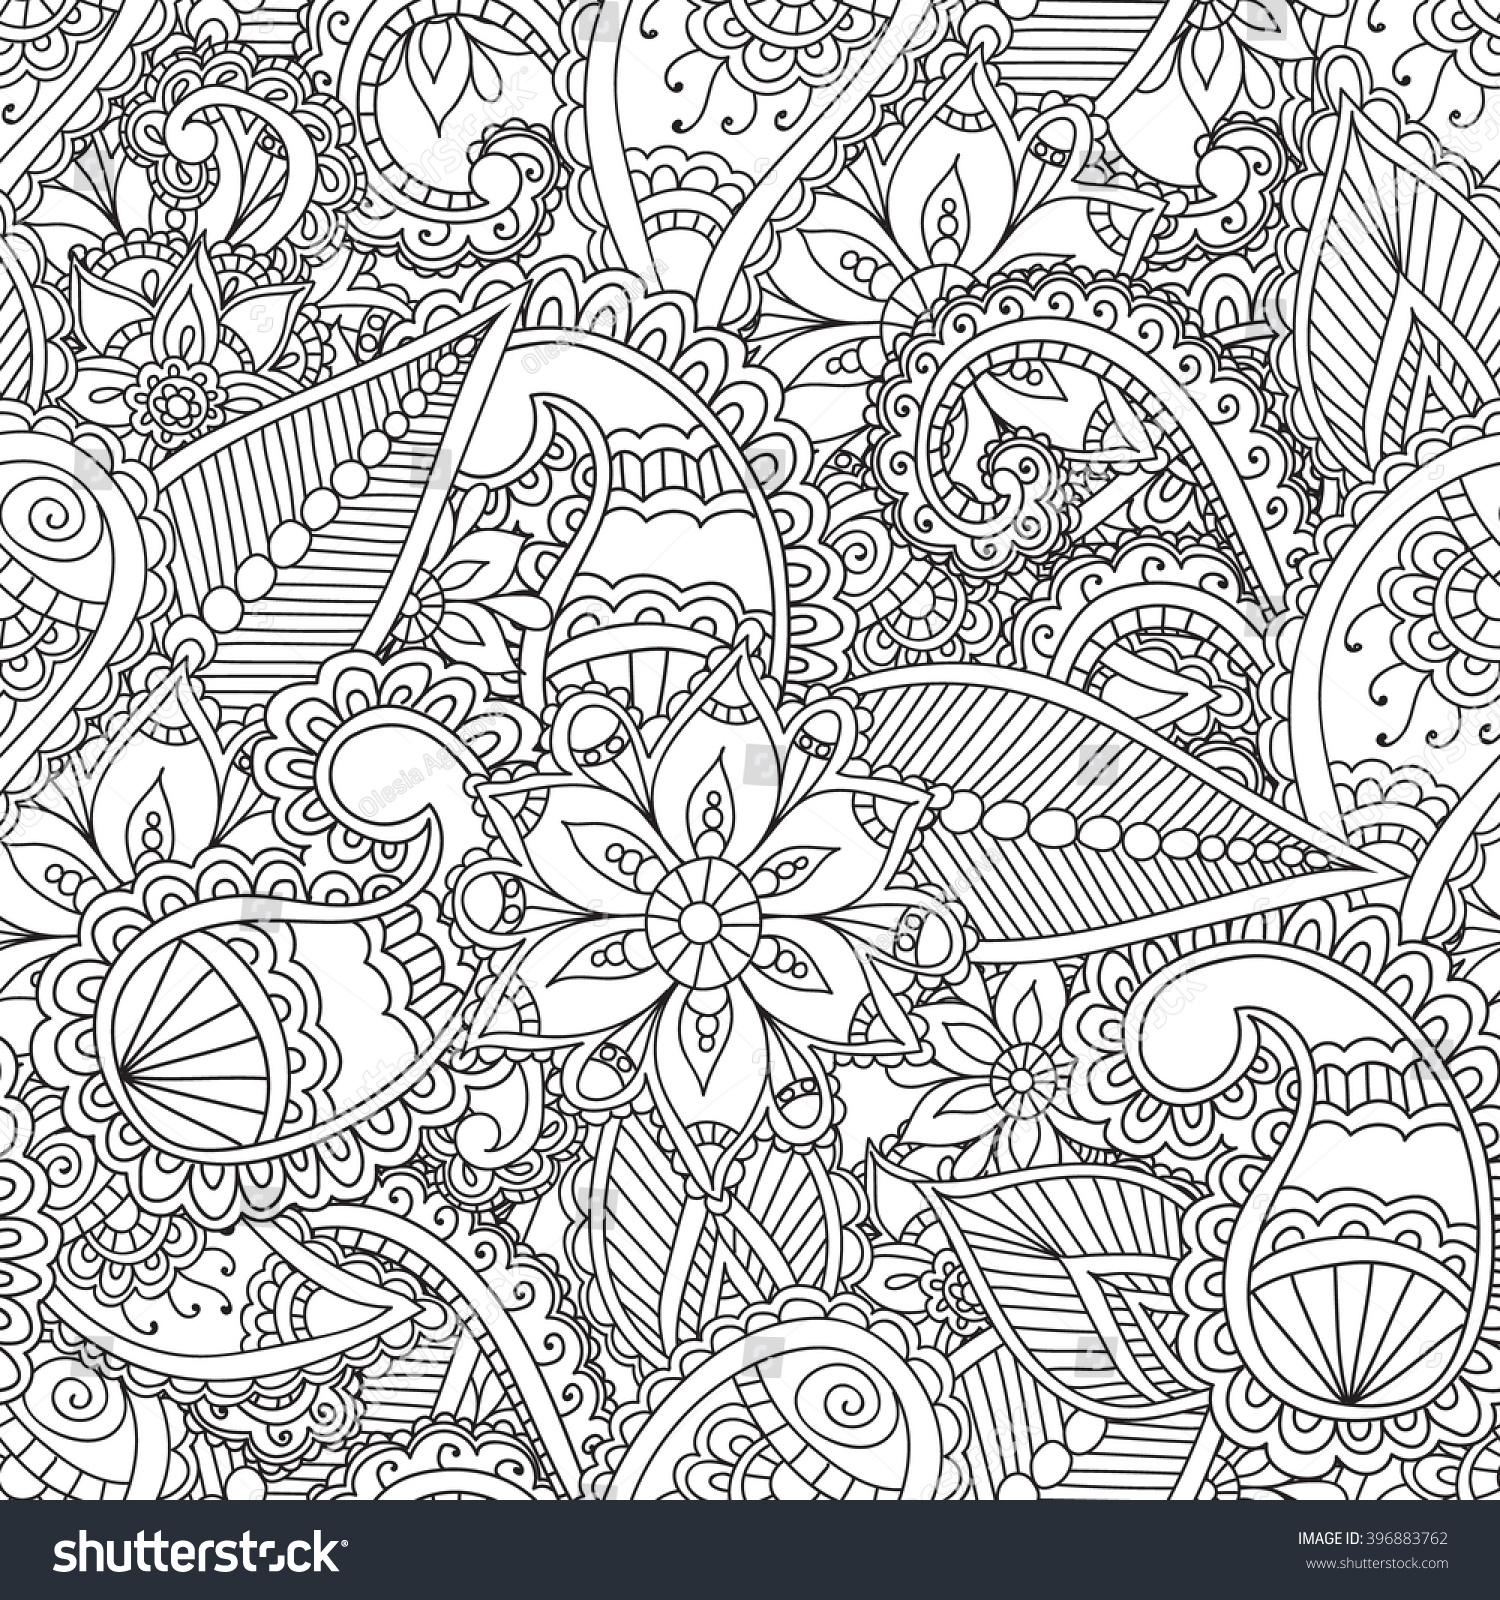 Coloring pages henna - Coloring Pages For Adults Seamless Pattern Henna Mehendi Doodles Abstract Floral Paisley Design Elements